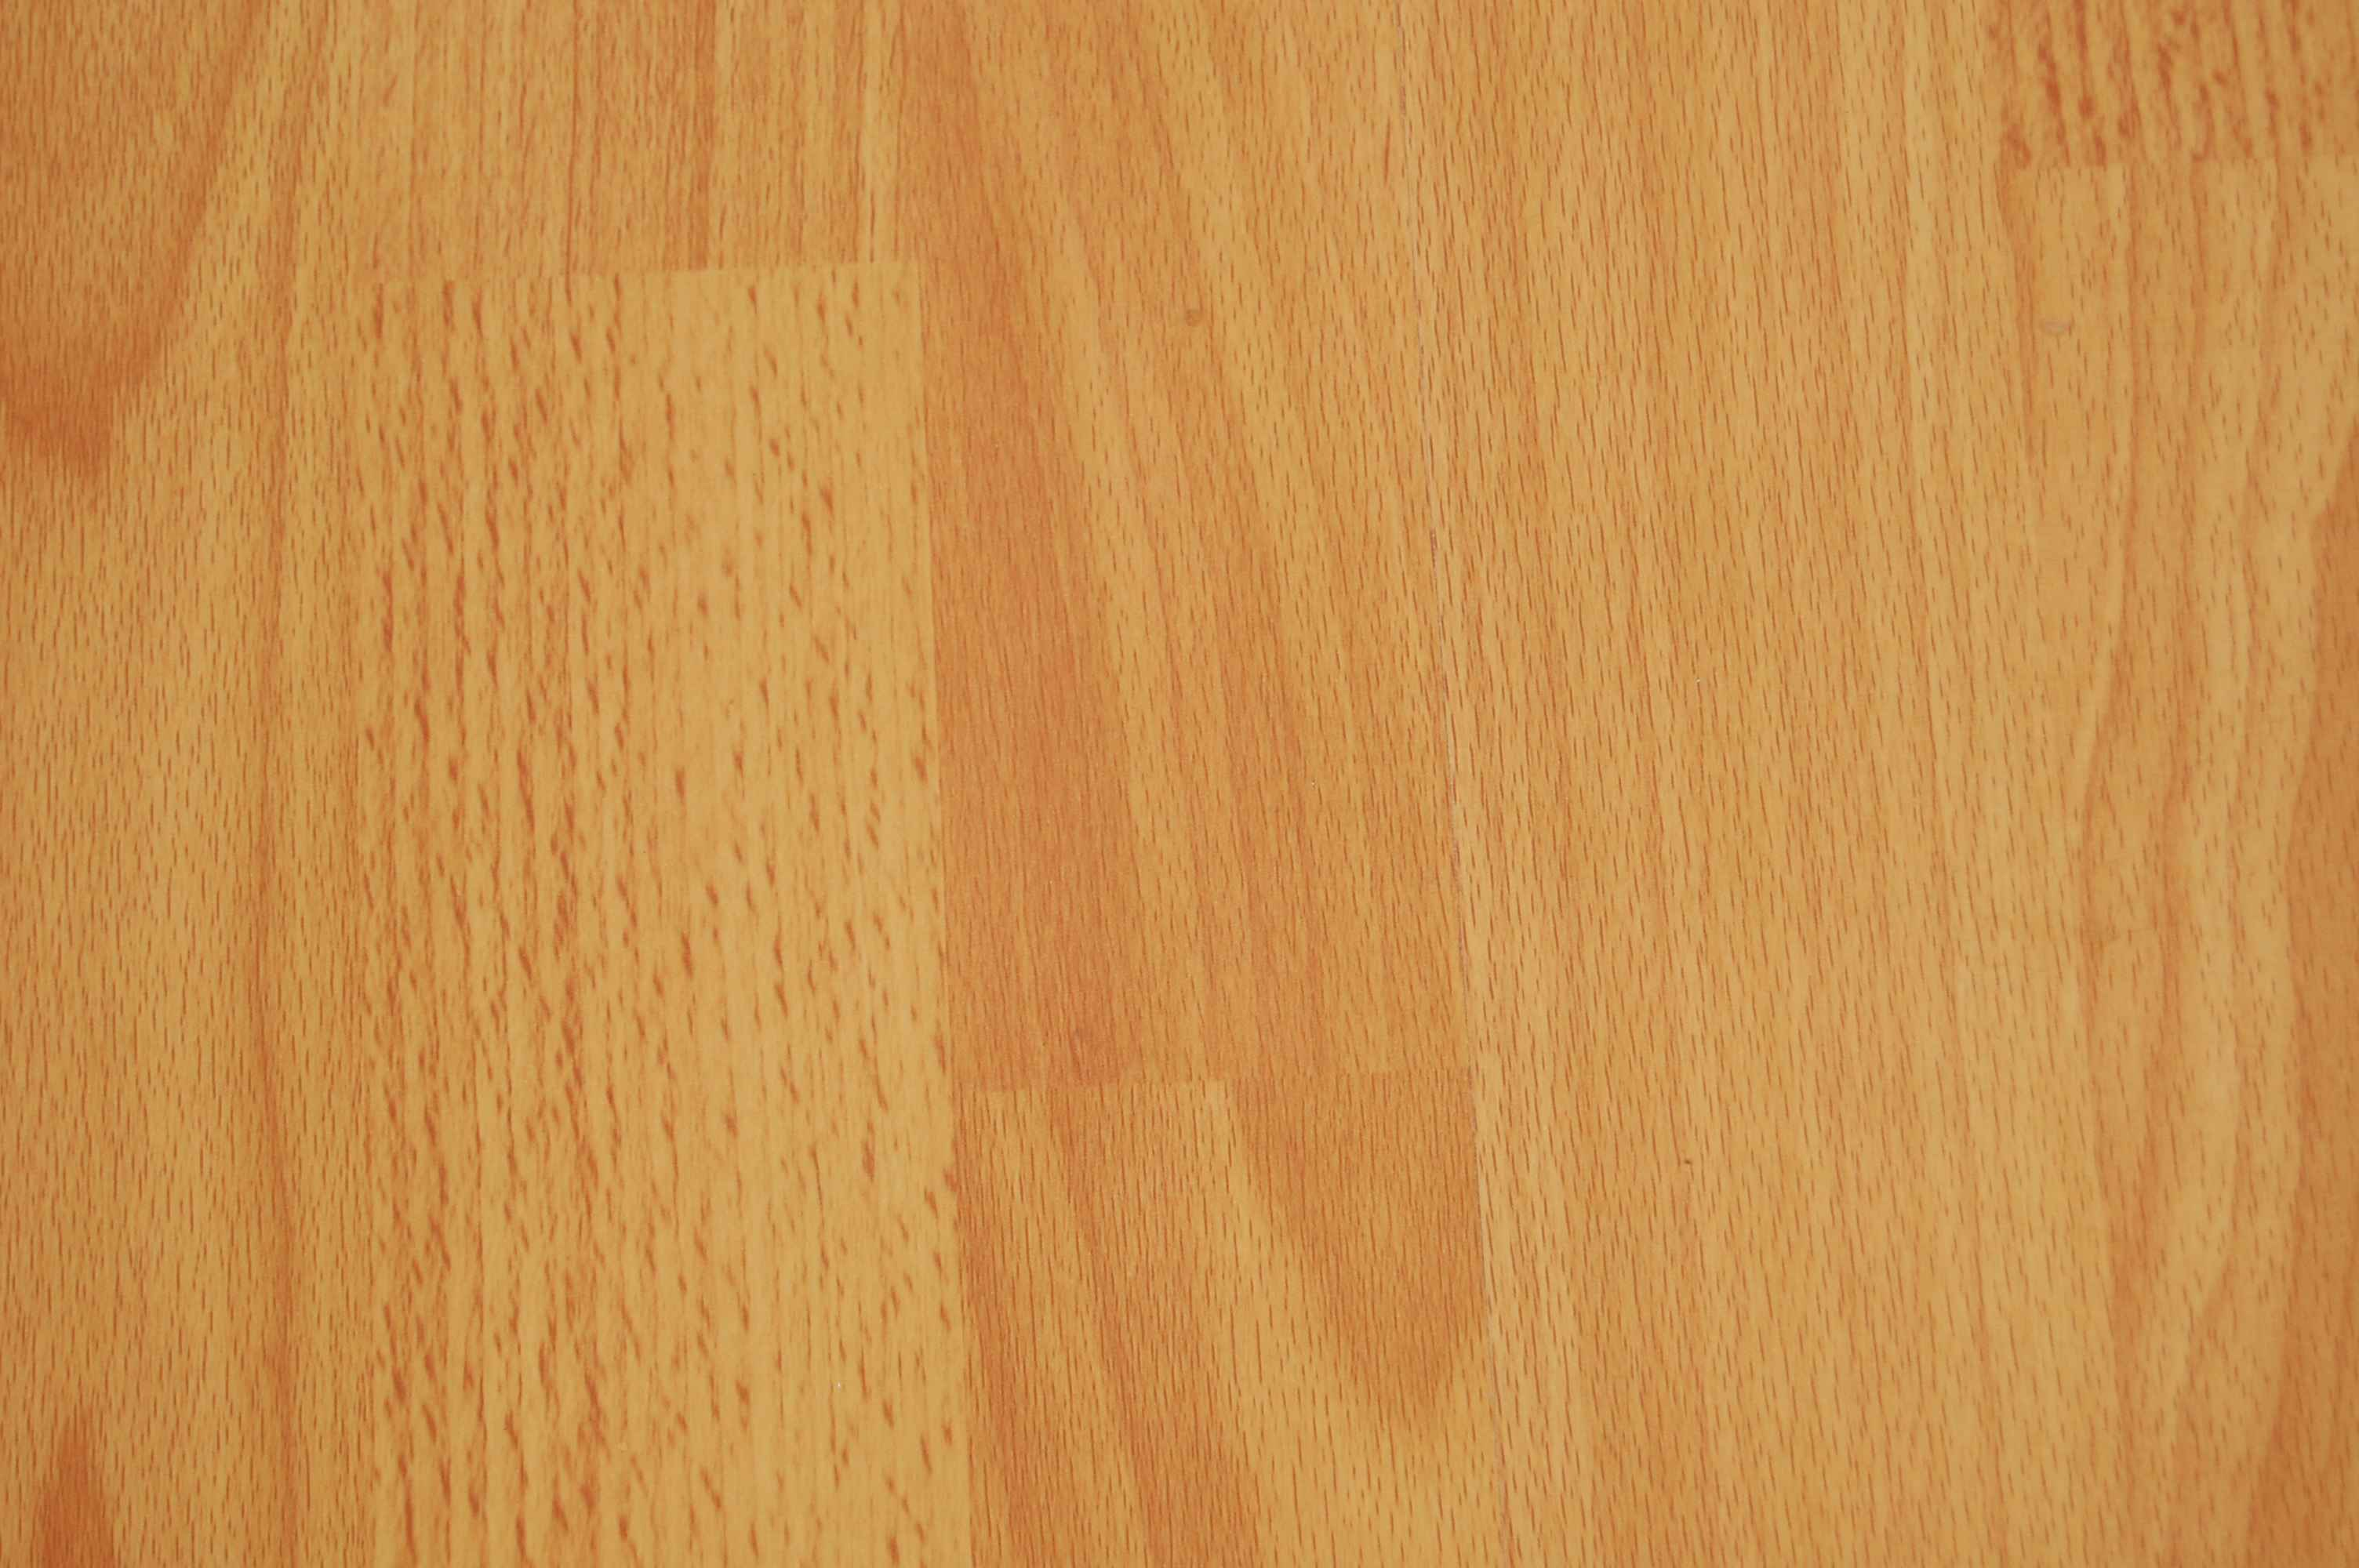 laminated wooden flooring photo - 2